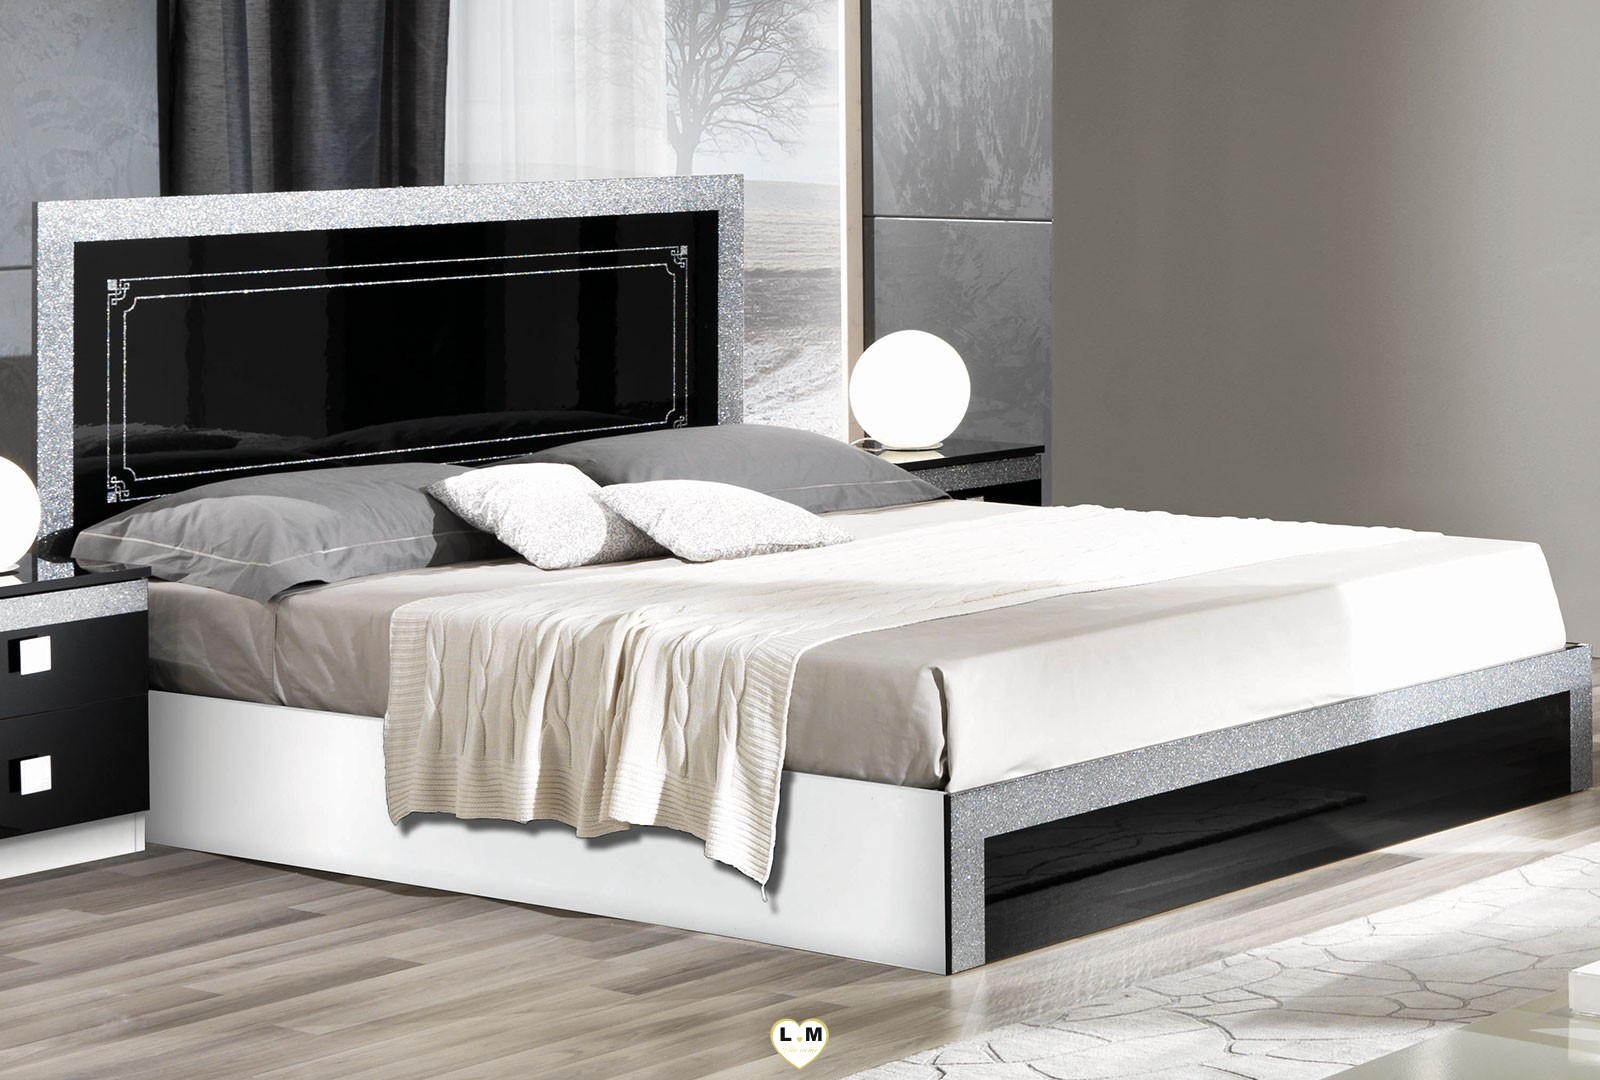 brazilia laque noir et blanc ensemble chambre a coucher lignemeuble com. Black Bedroom Furniture Sets. Home Design Ideas